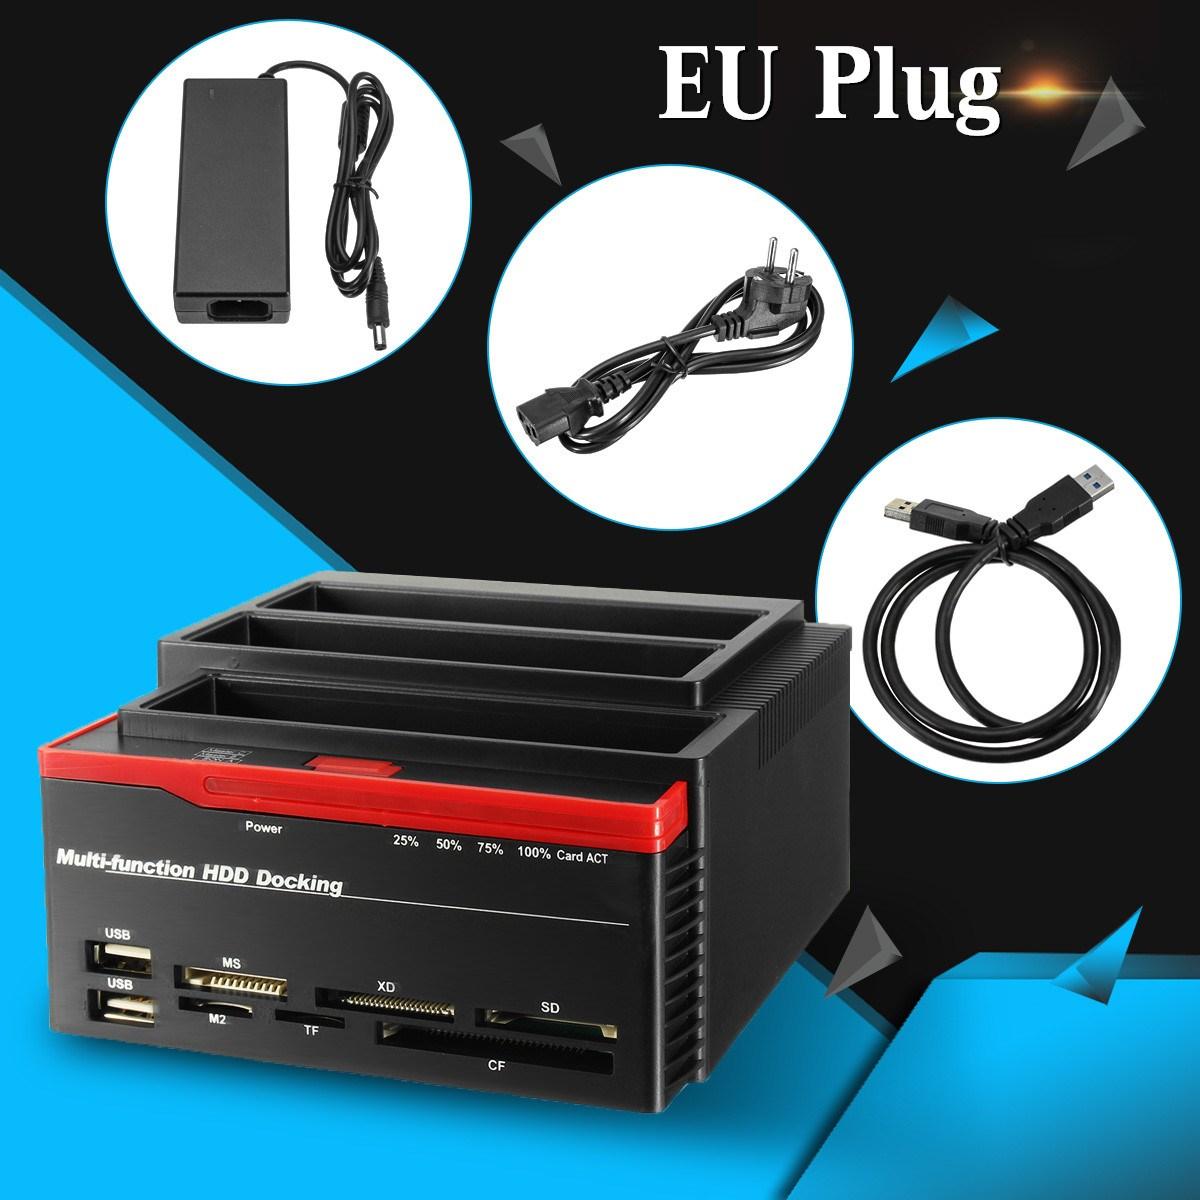 2.5/3.5 to 2 SATA Ports 1 IDE Port USB 3.0 External HDD Hard Drive Docking Station Card Reader Hub W/EU Plug